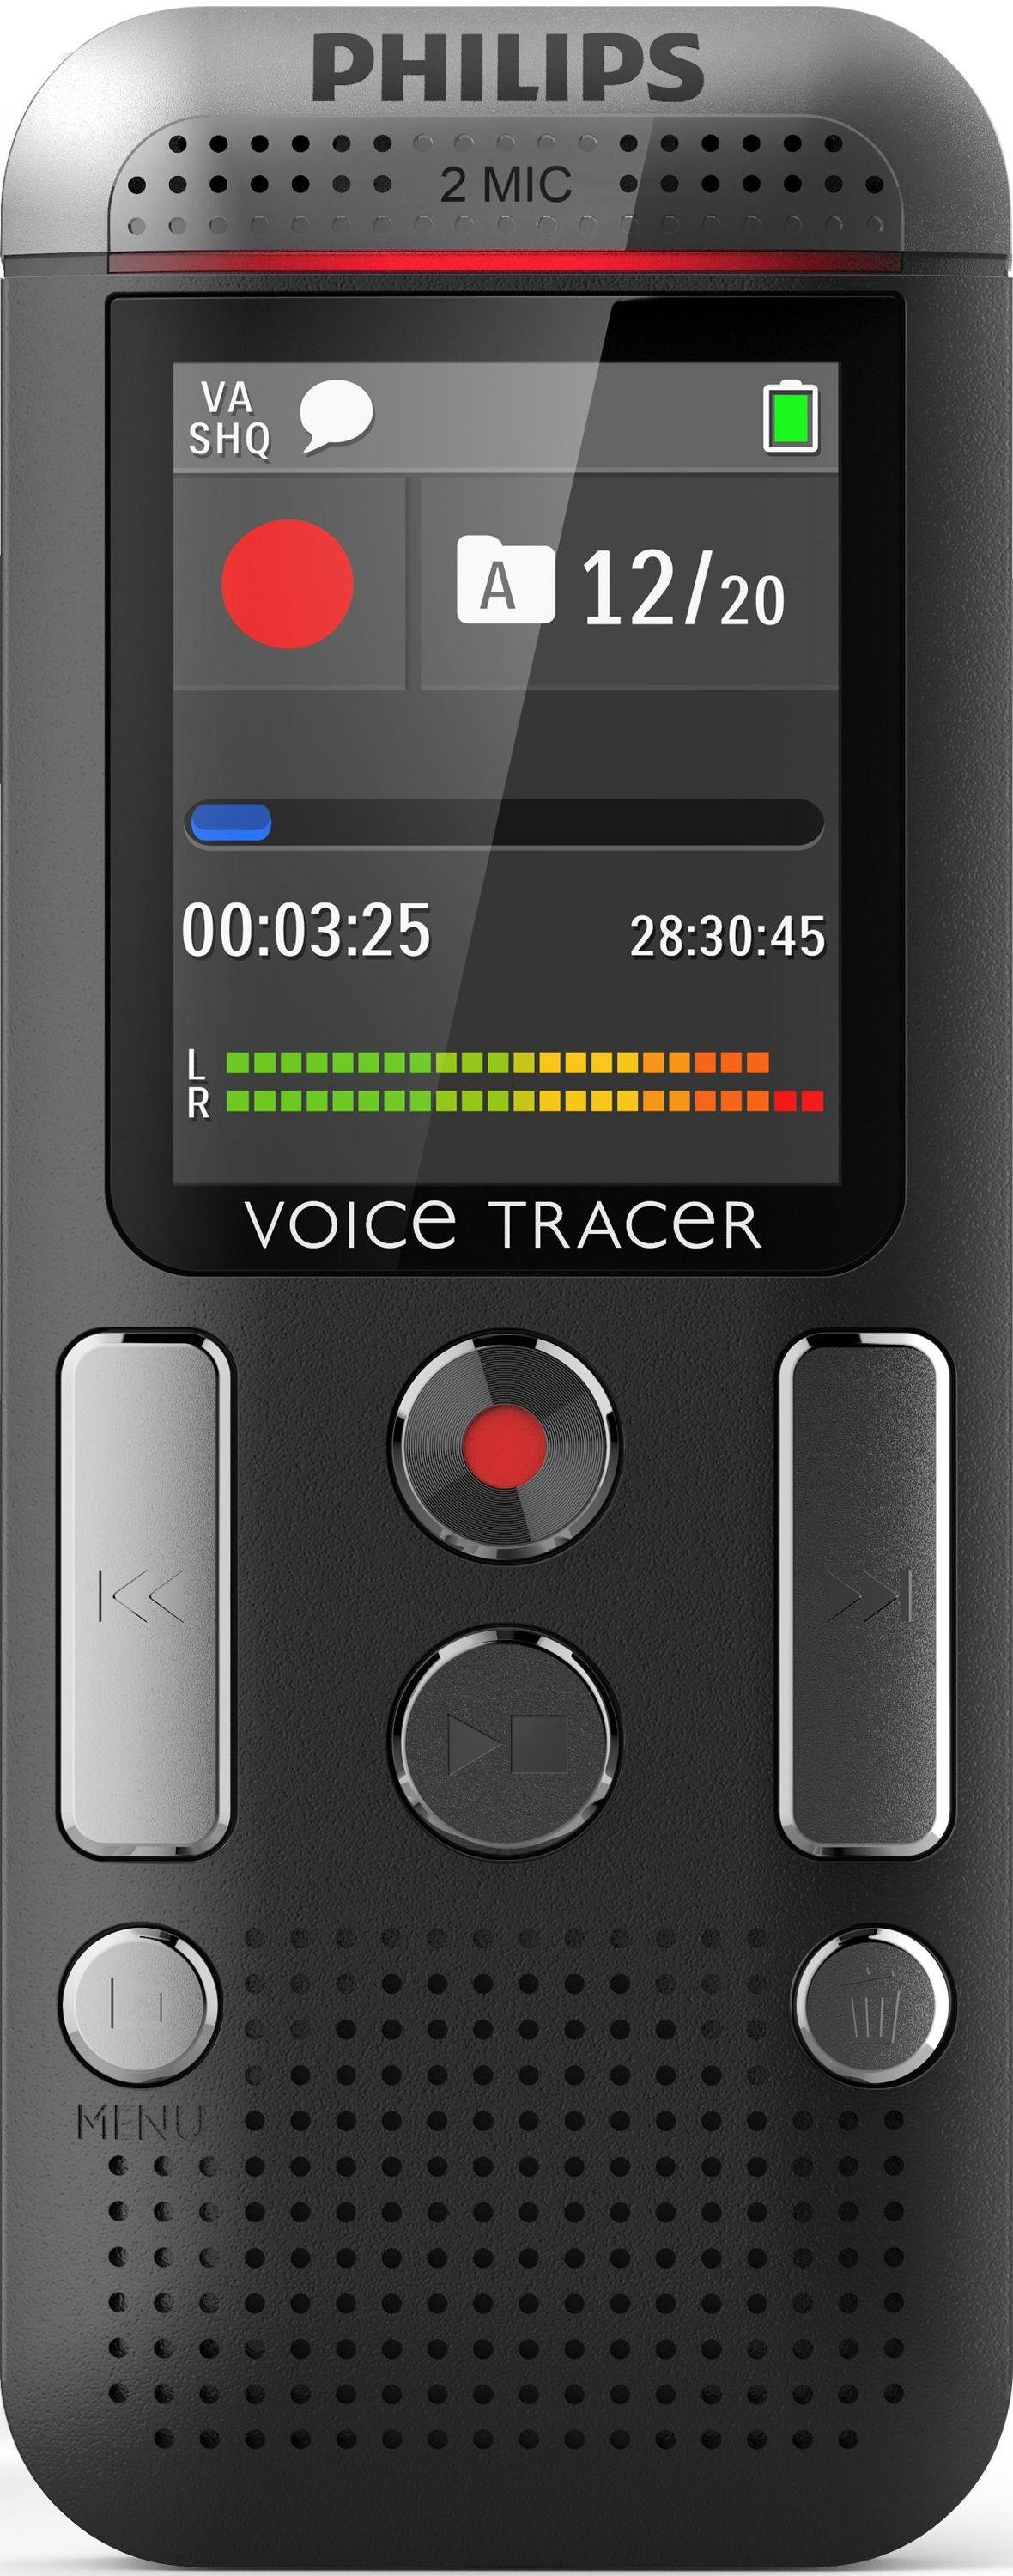 Philips dvt2700 digital voice recorder with speech to text